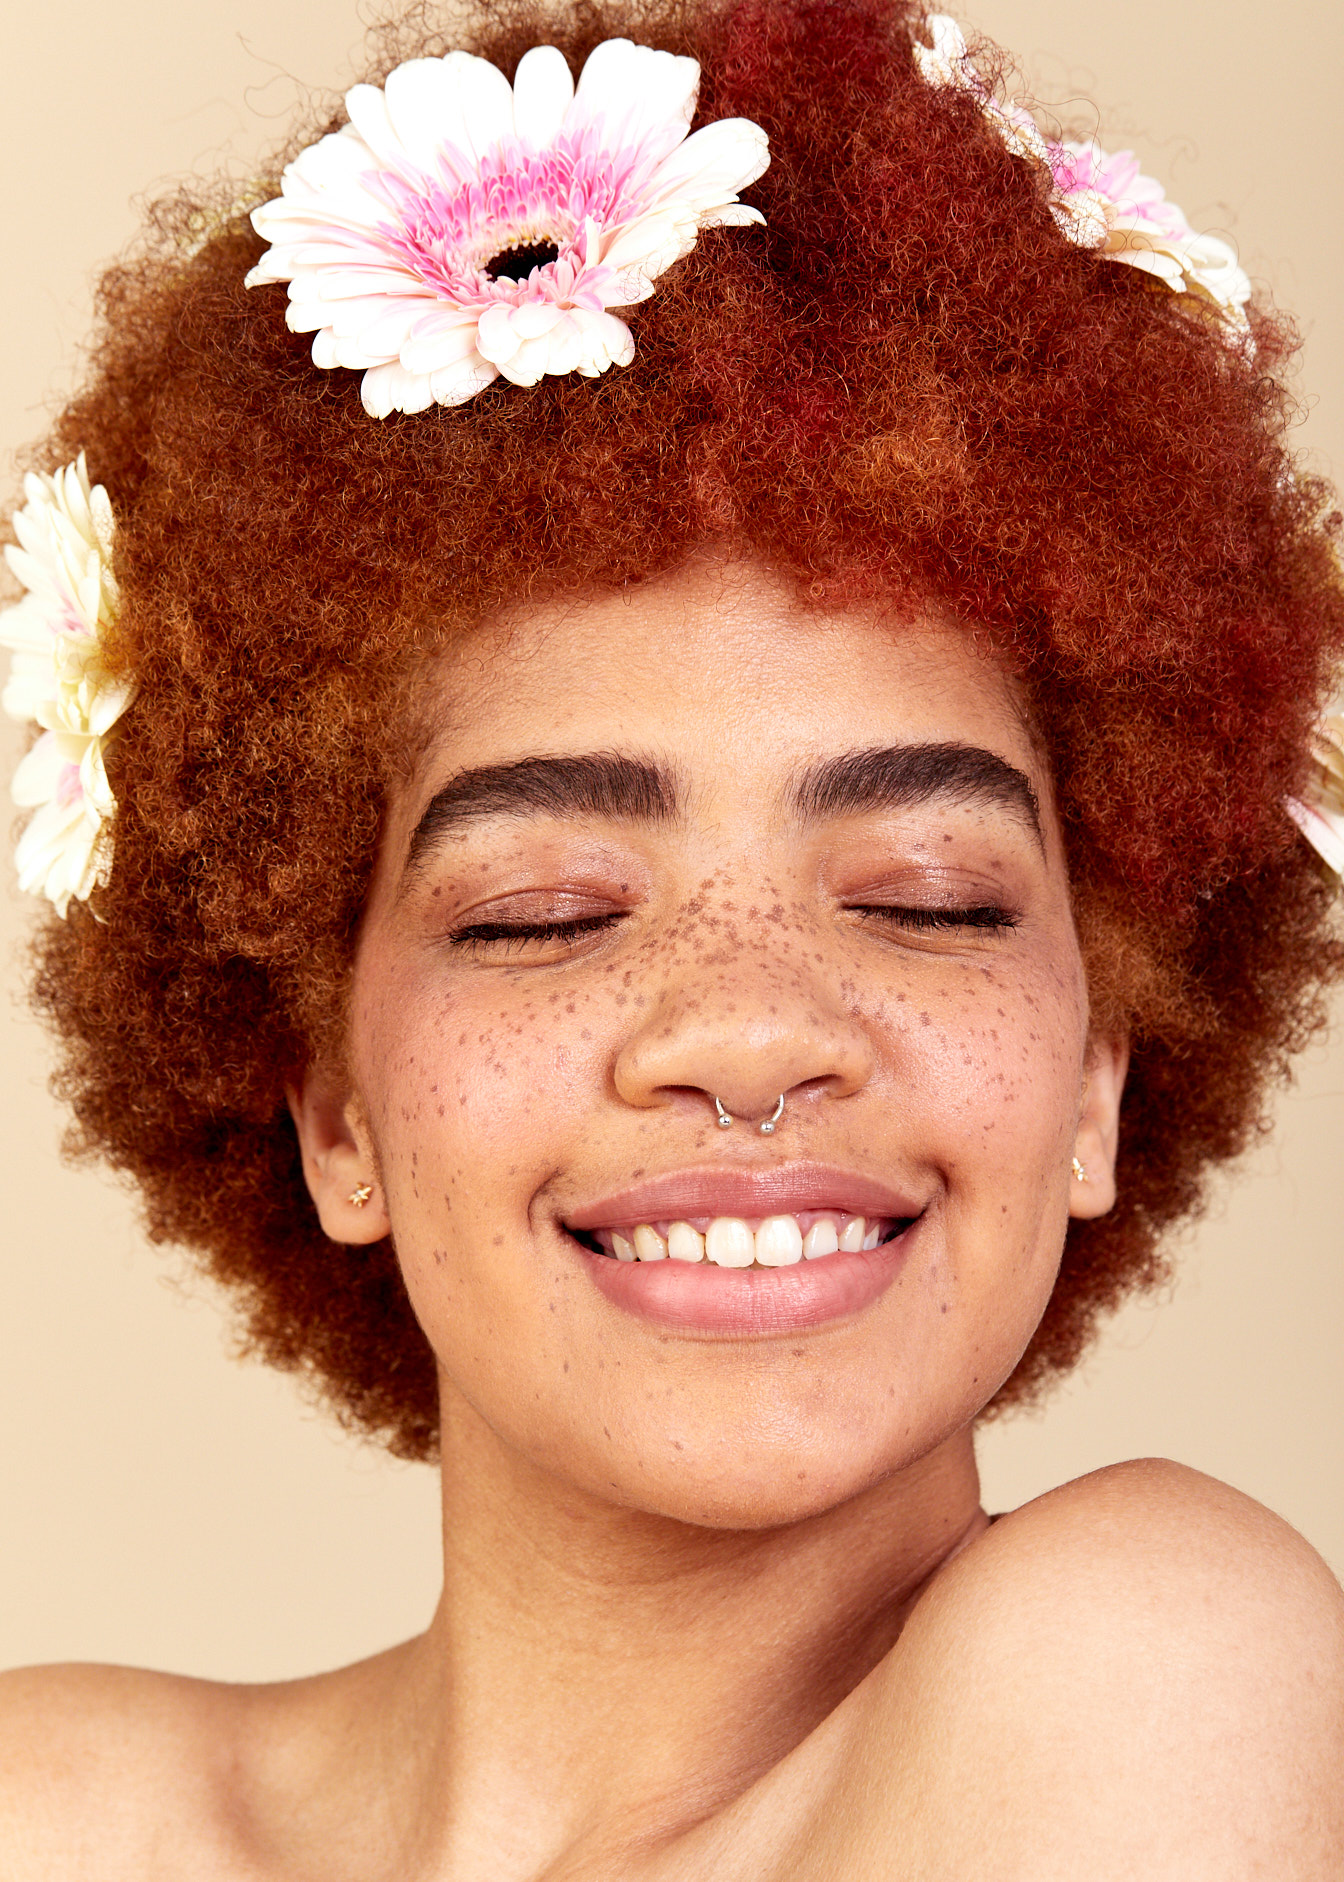 No retouching portrait of girl smiling with flower in her hair.